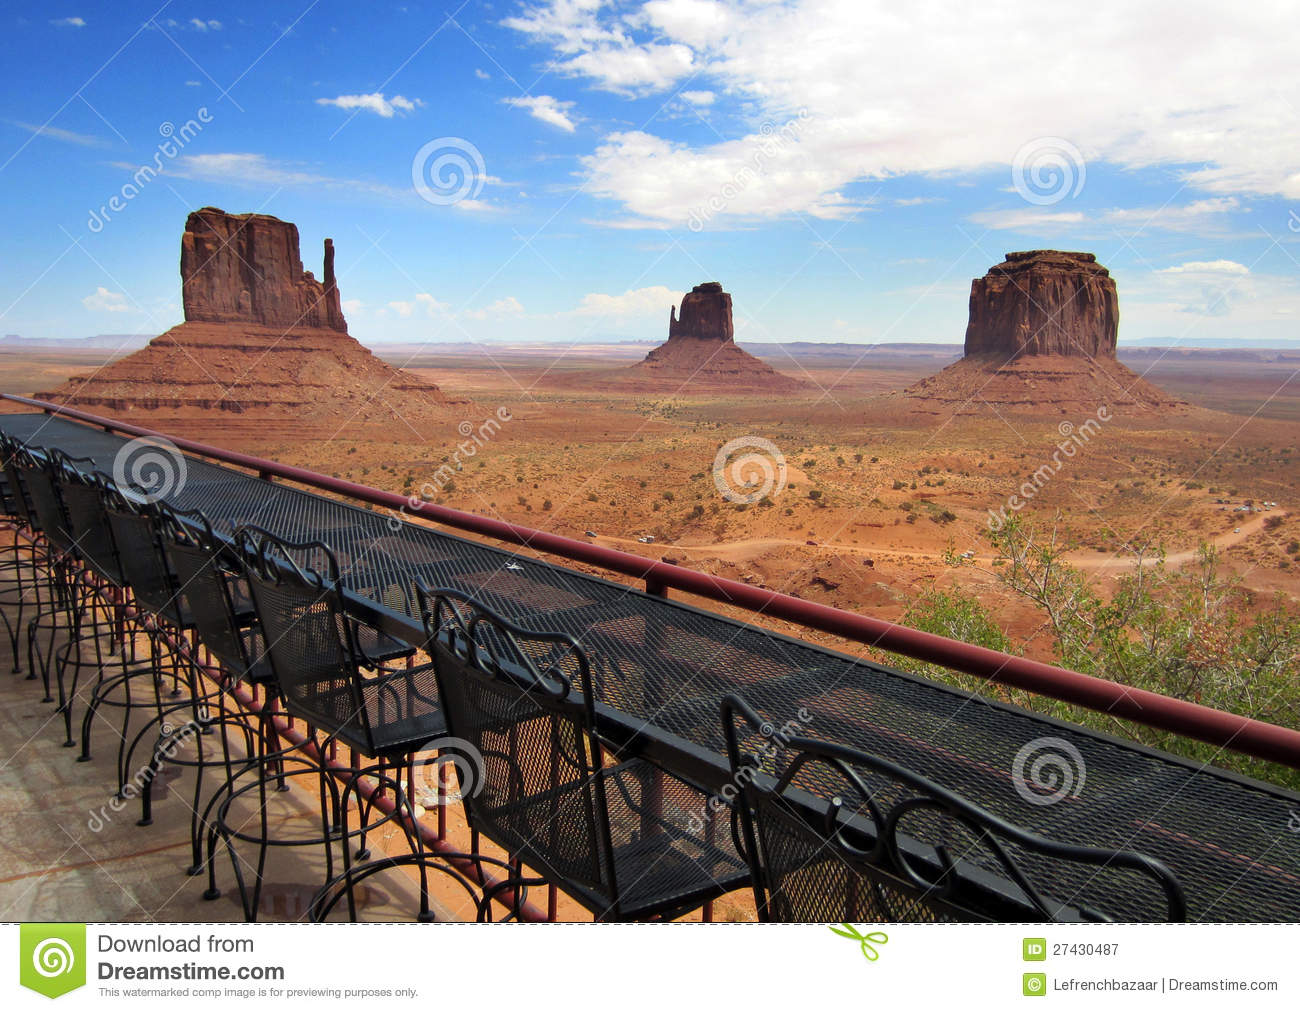 navajo nation map with Royalty Free Stock Photography Monument Valley Navajo Tribal Park Image27430487 on Presentation Name furthermore Img 3477 moreover New Mexico further Water At The Wave in addition Stock Images Monument Valley Colorado Plateau Navajo Nation U S Image30770294.